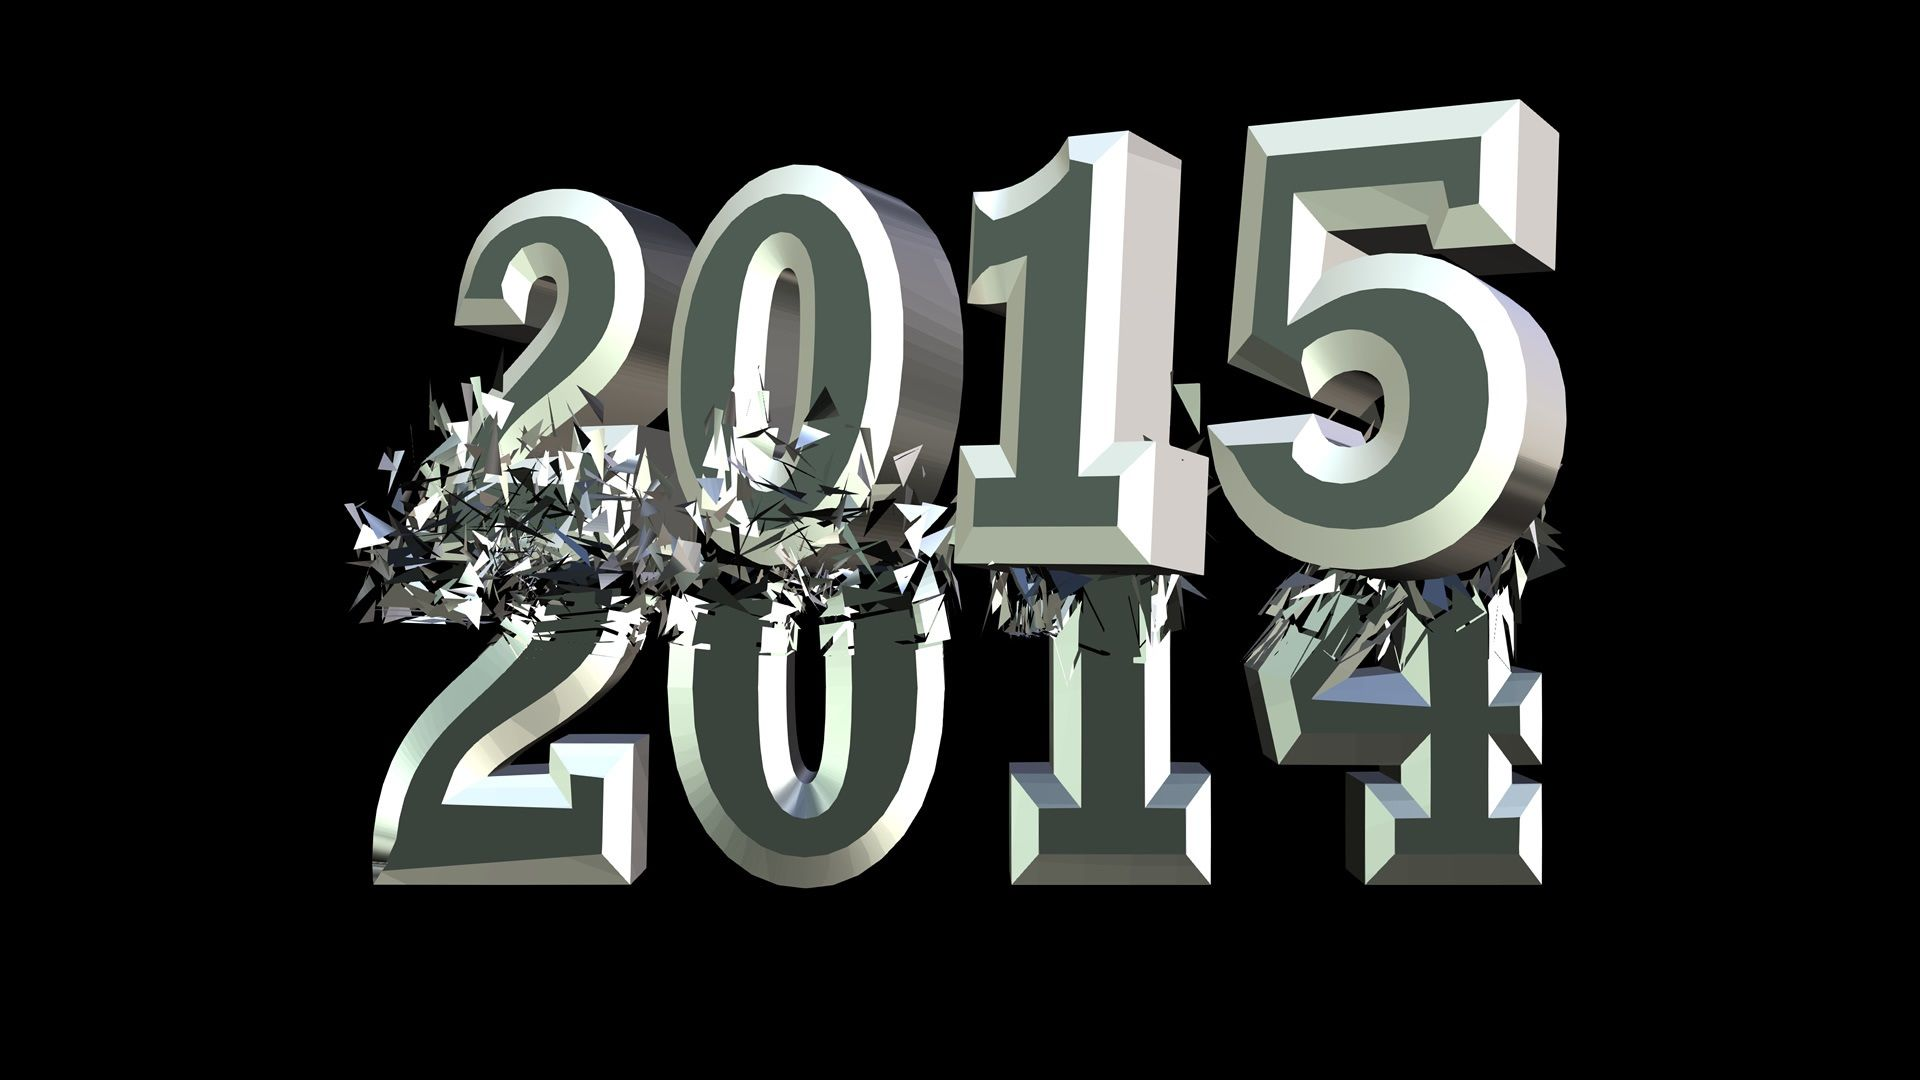 New Years Eve 2015 Wallpapers Free.